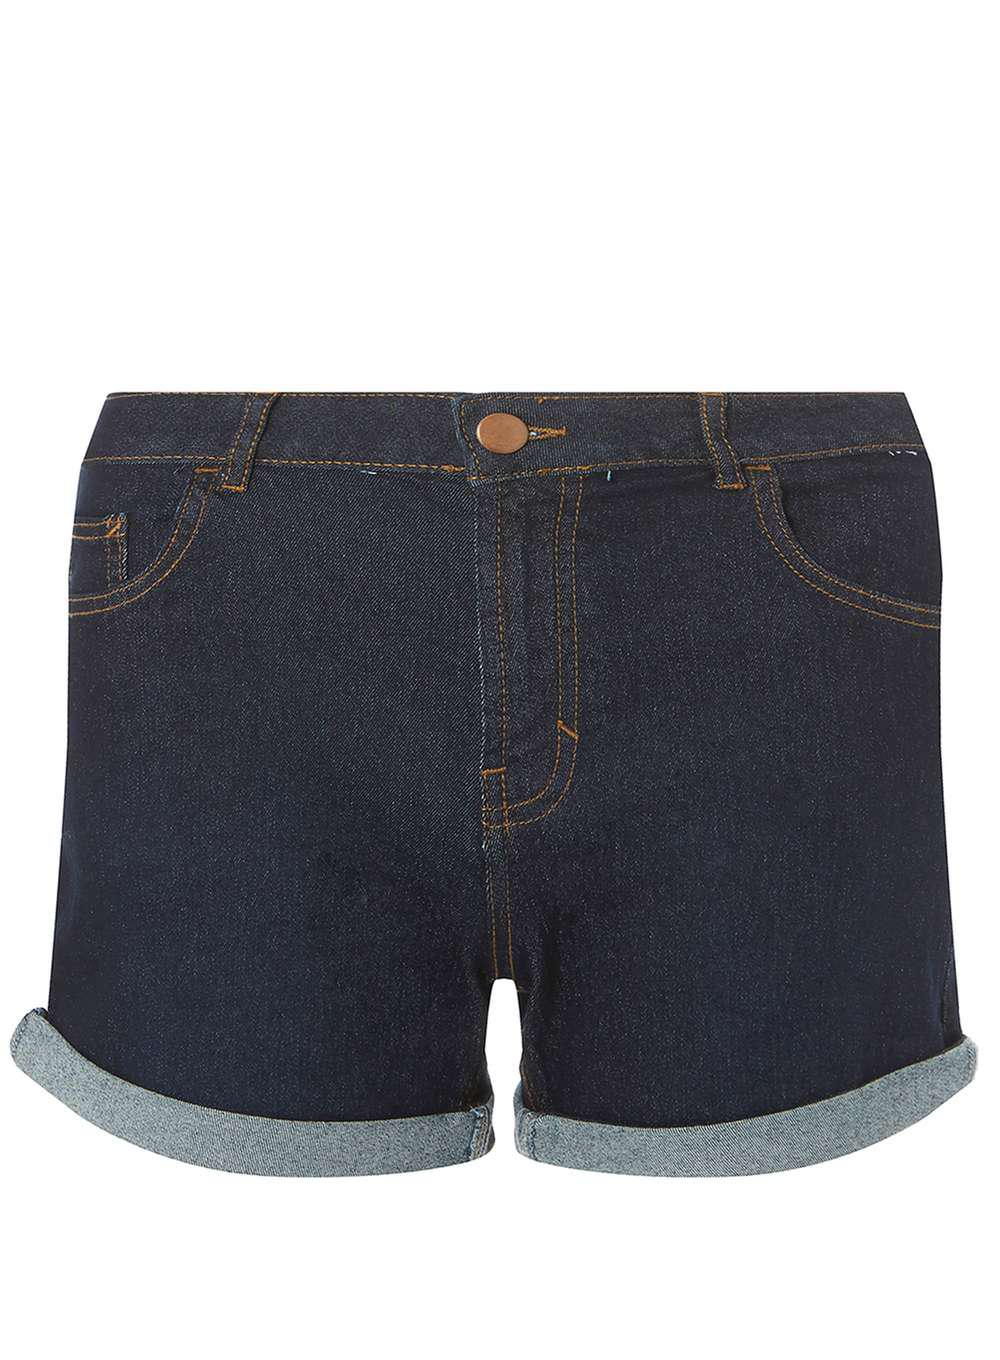 Dorothy Perkins Womens Indigo Denim Knee Length Shorts- For Sale Cheap Authentic Clearance Low Shipping Fee BsZsRQW2fh